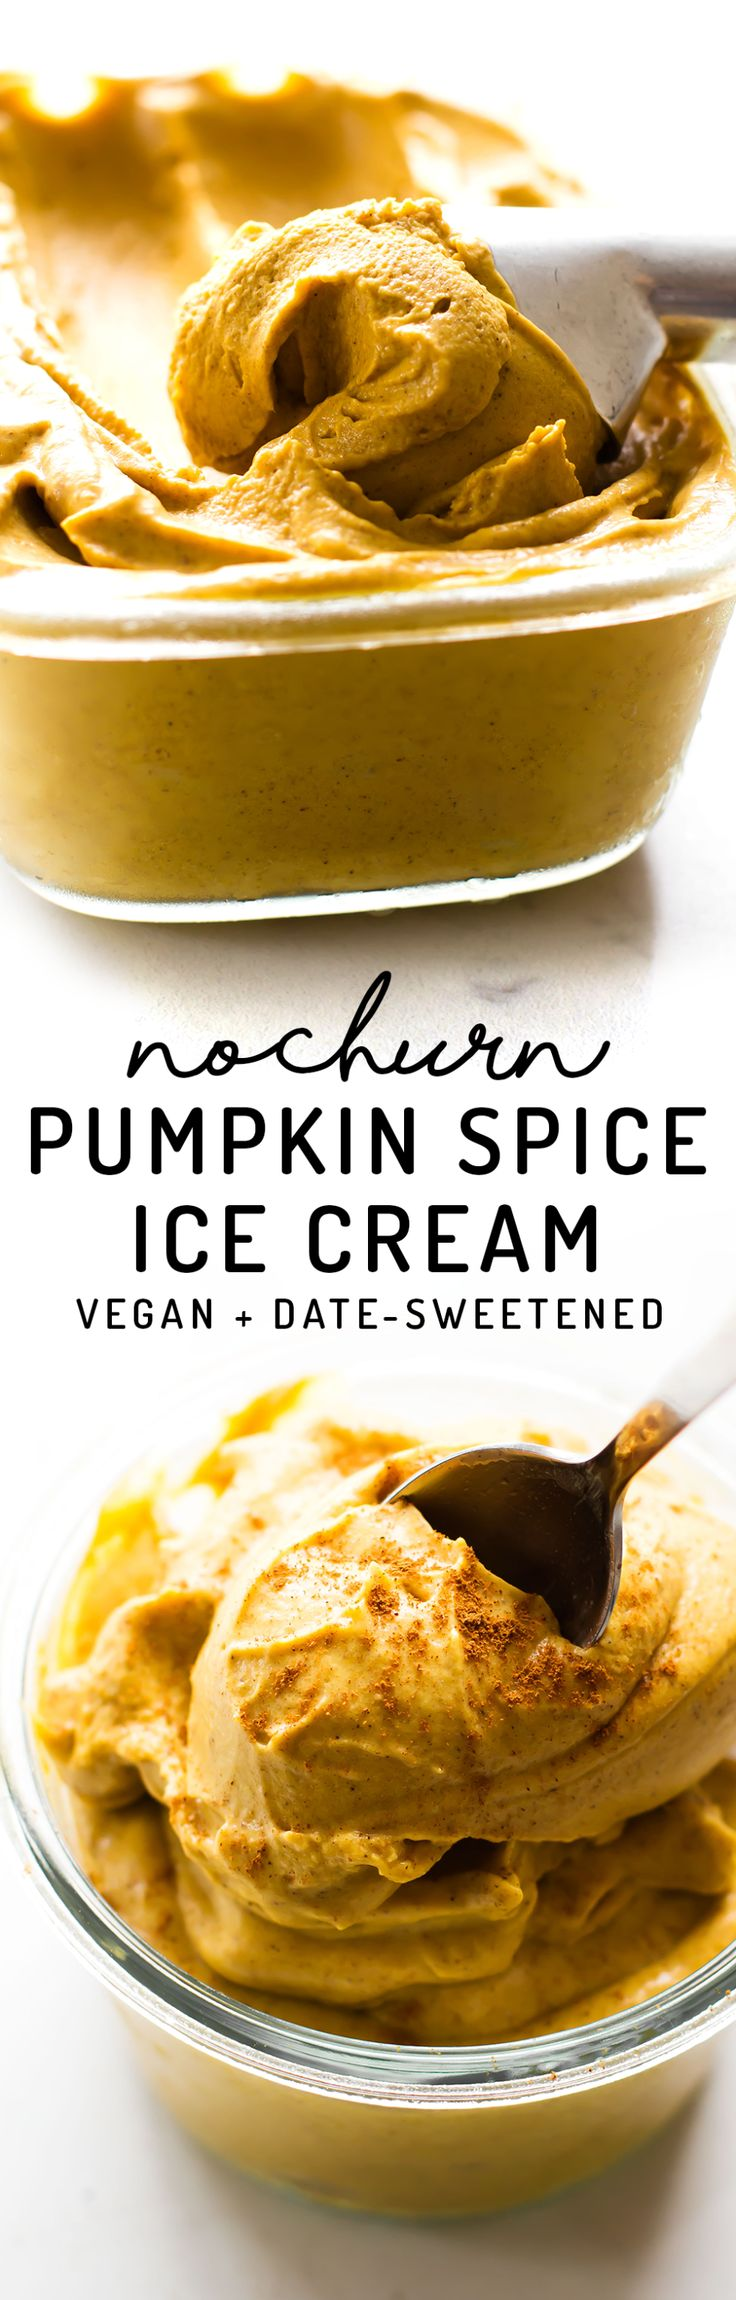 Join the fall craze with a cold creamy twist! This healthy Pumpkin Spice Ice Cream is vegan + paleo made with 4 simple ingredients and no refined sugar.